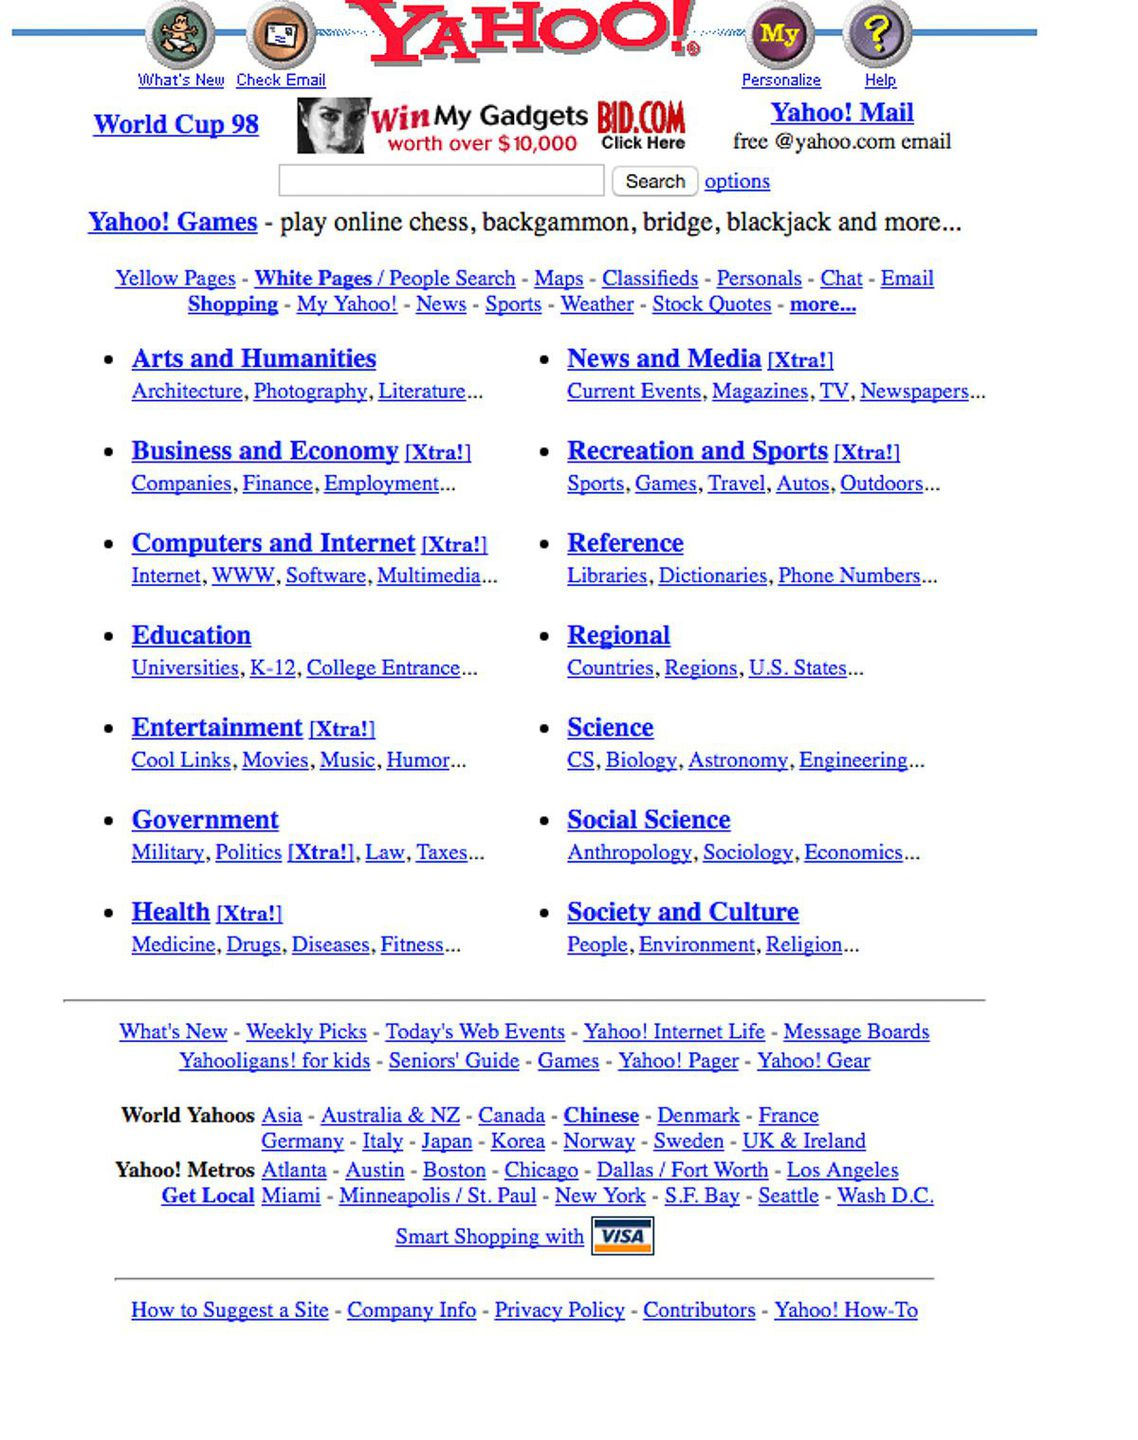 yahoo in the 90s